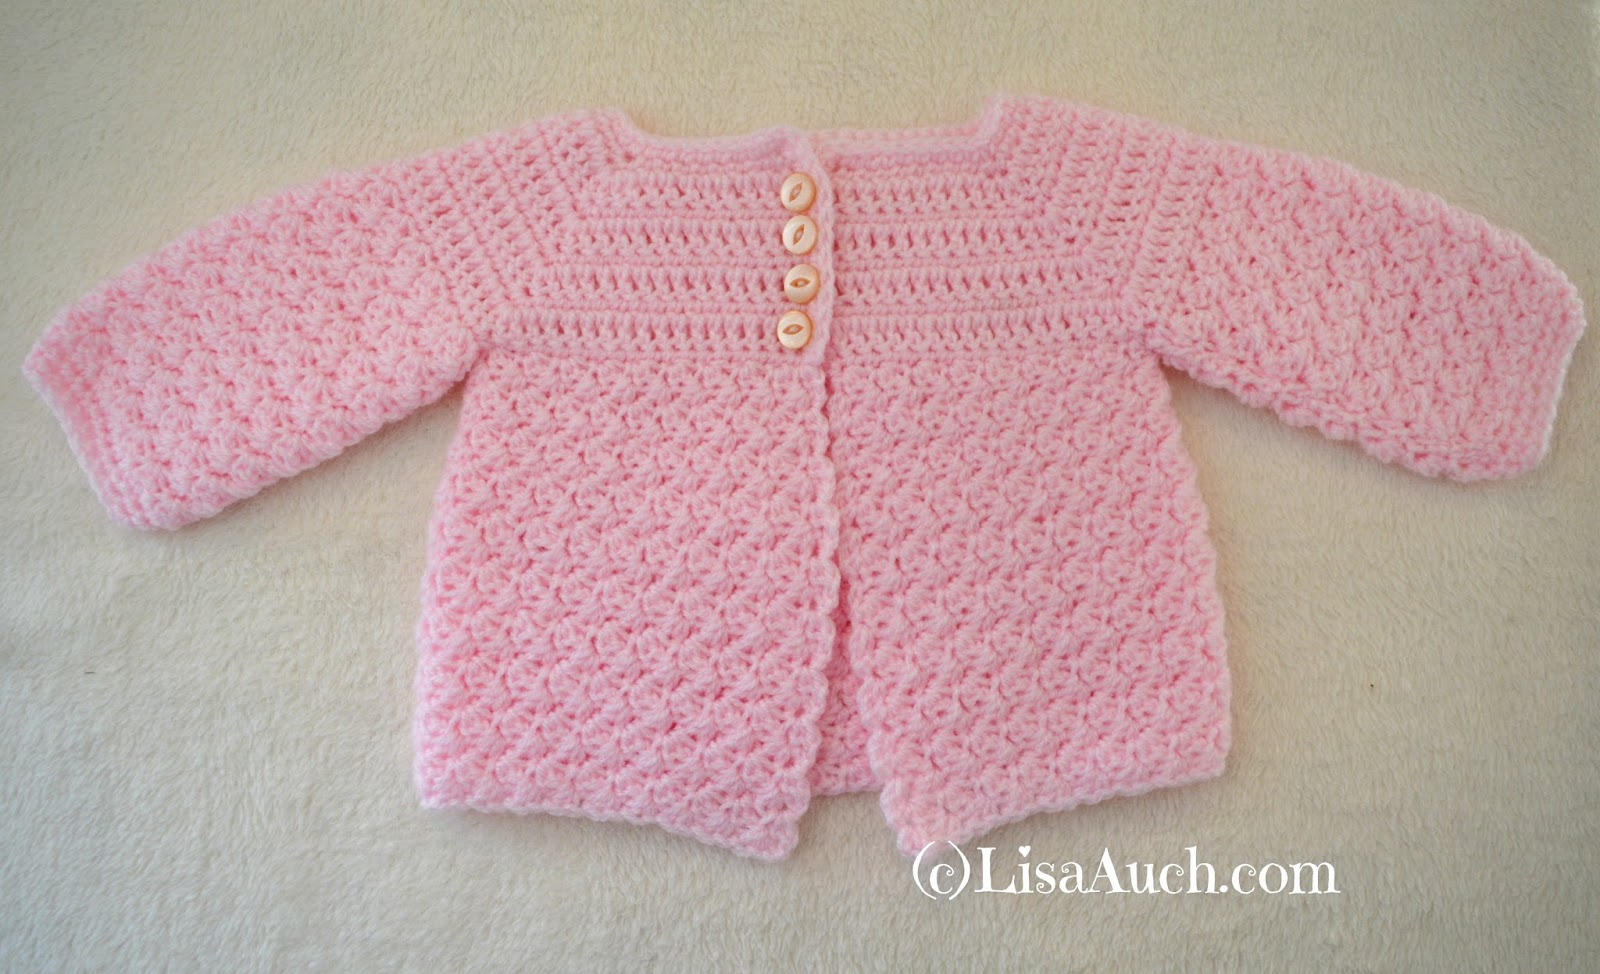 Free Crochet Patterns For Easy Baby Sweaters : Crochet Baby Cardigan Easy Free Pattern Free Crochet ...